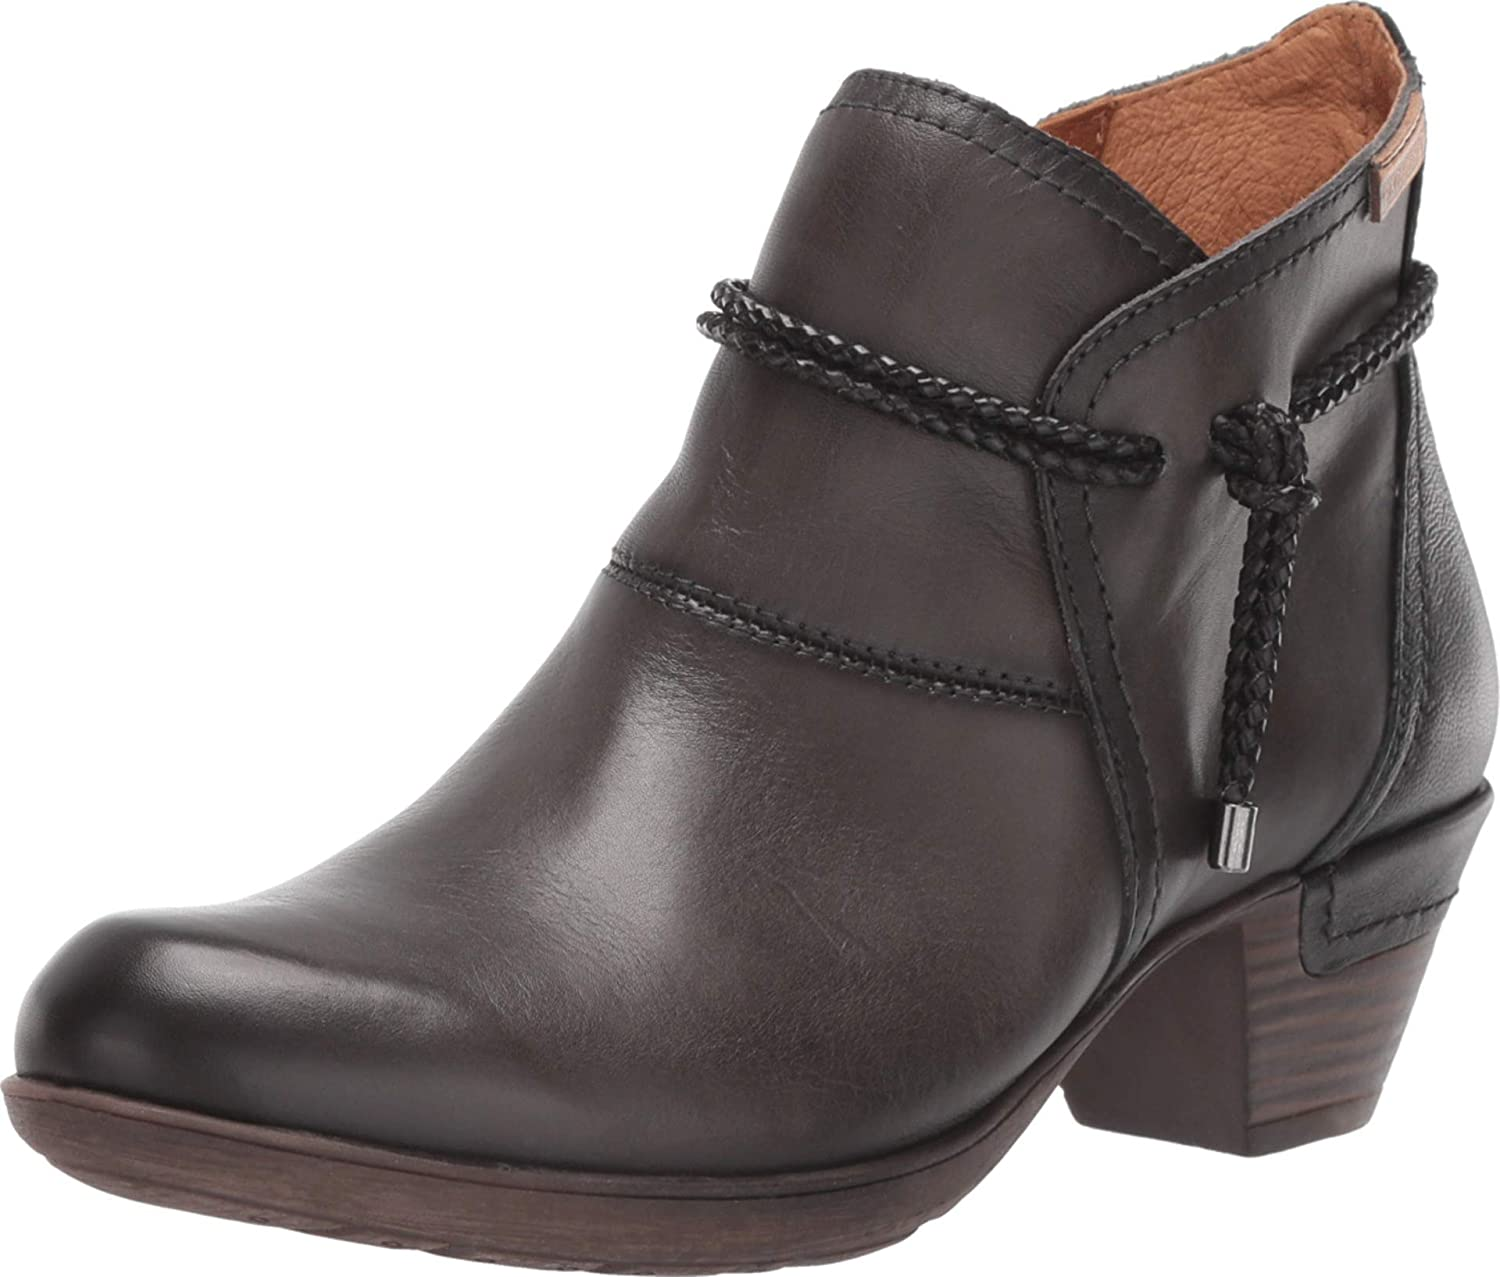 PIKOLINOS Women's Rotterdam 902-8775 Lead Ankle Boot 9.5-10 M US